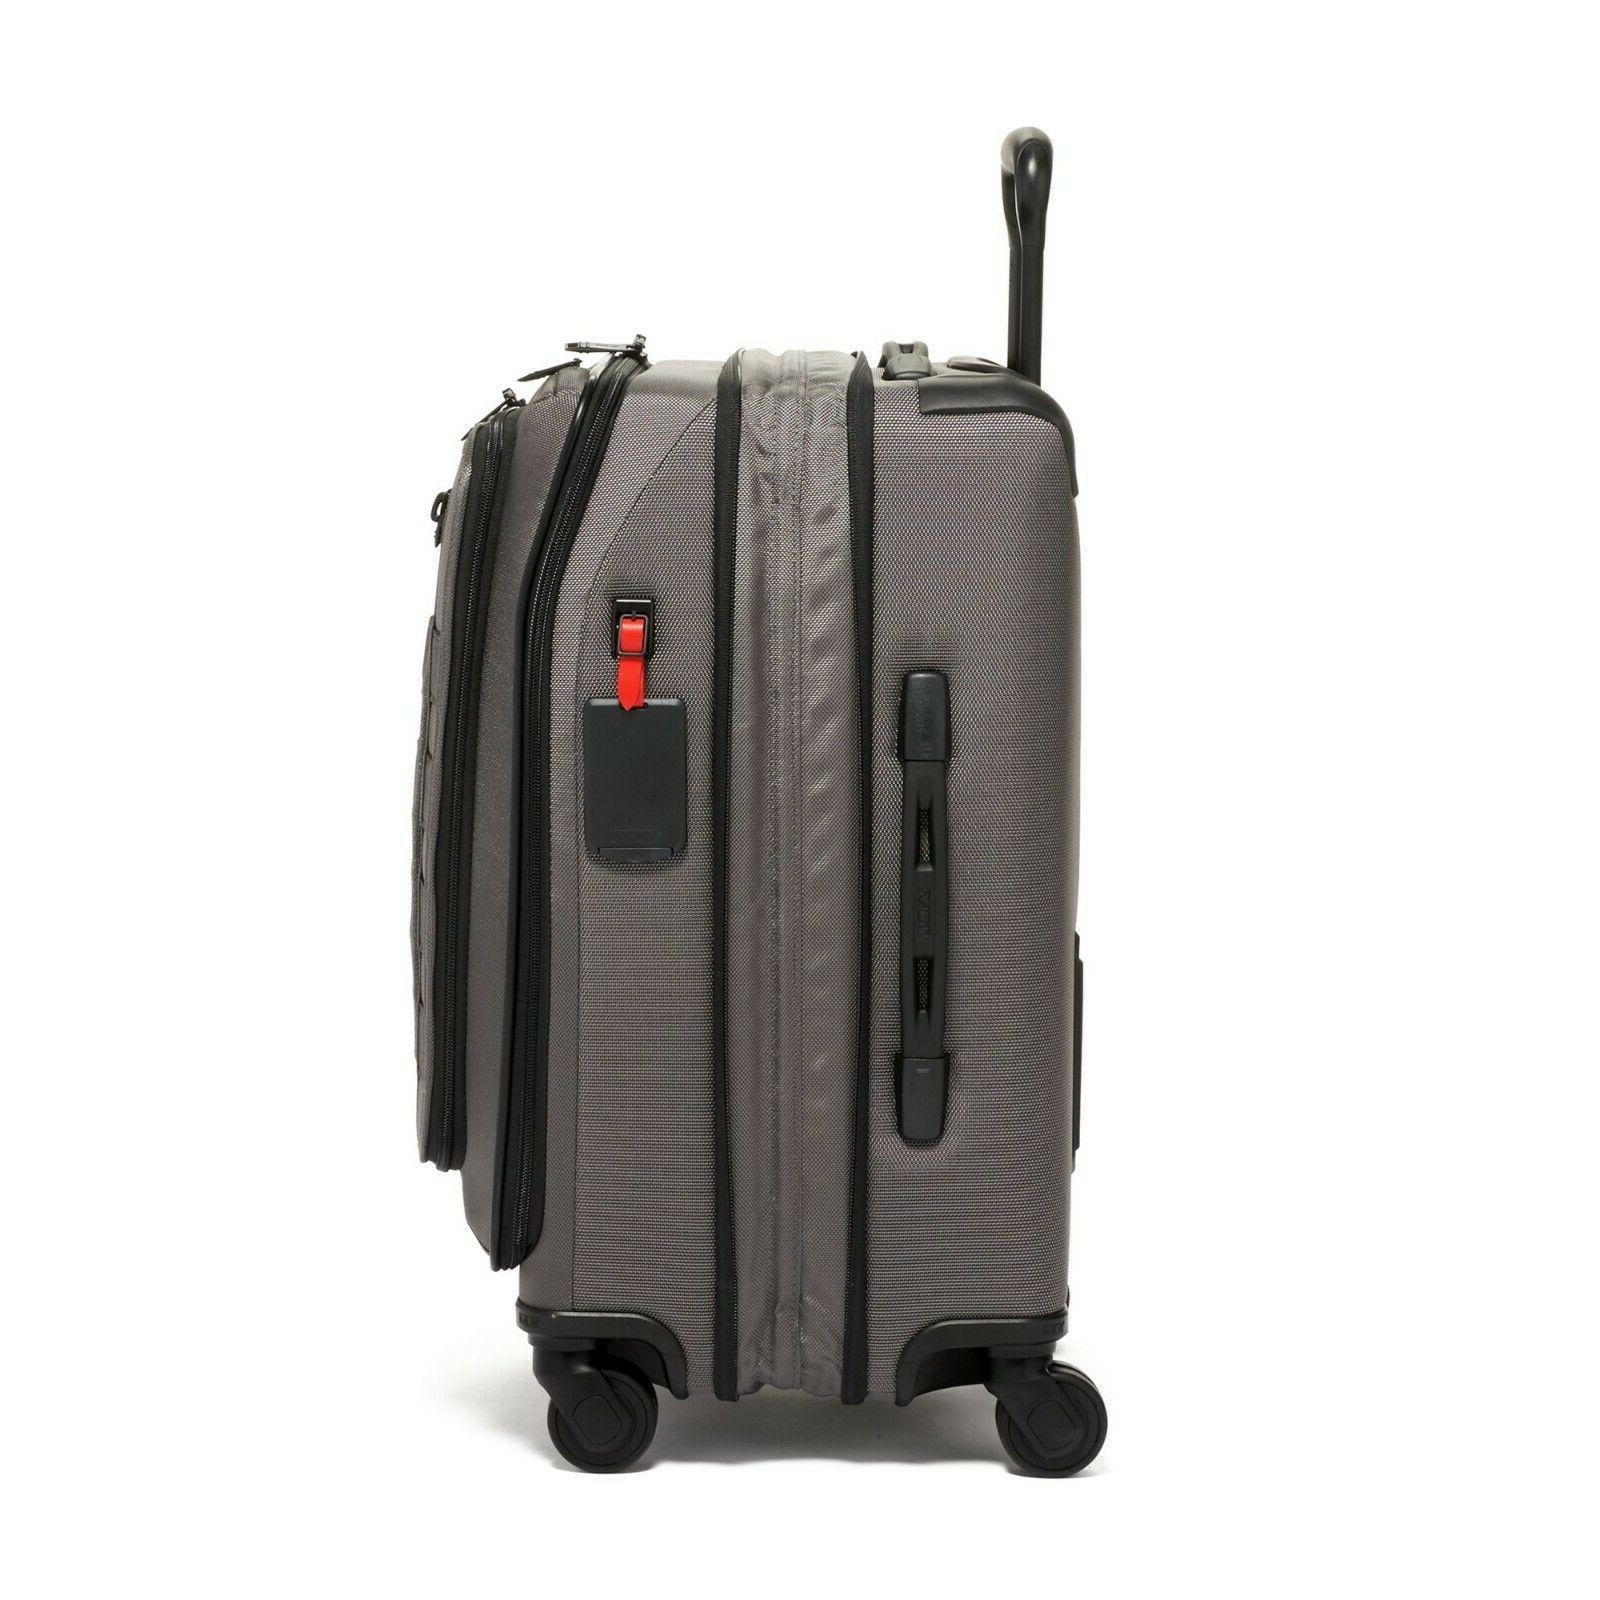 NEW Expandable Carry On 2228660 Storm Gray